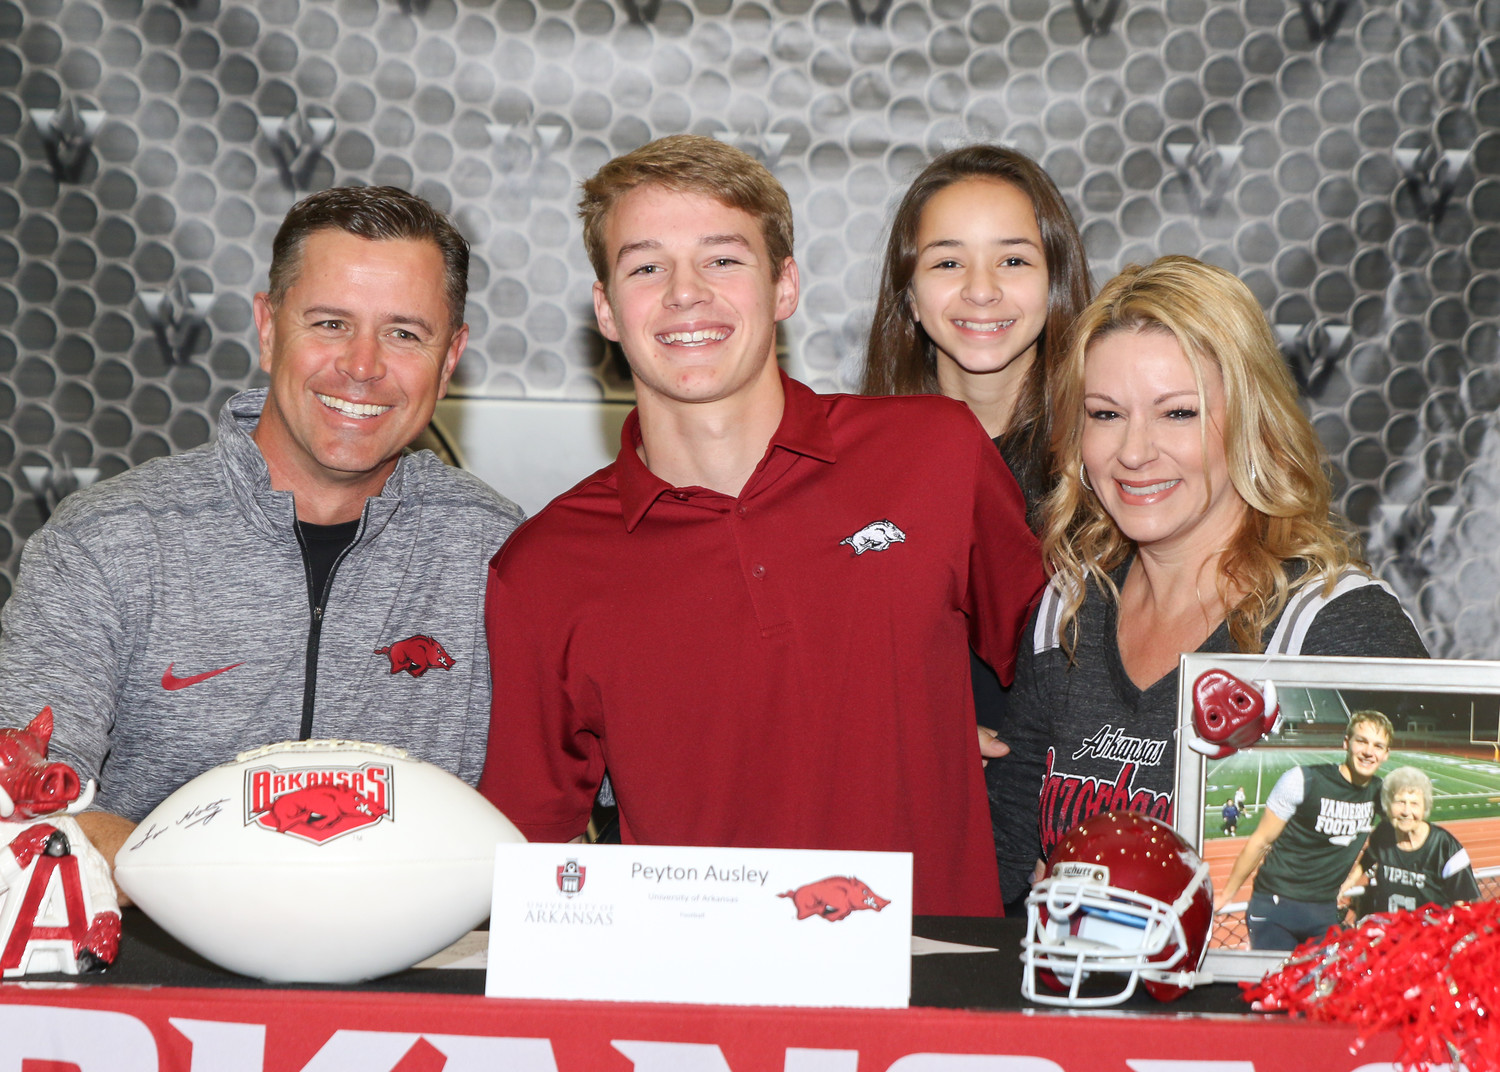 Peyton Ausley signed a letter of intent to play football at the University of Arkansas during a signing day ceremony at Vandegrift High School on February 7, 2018.